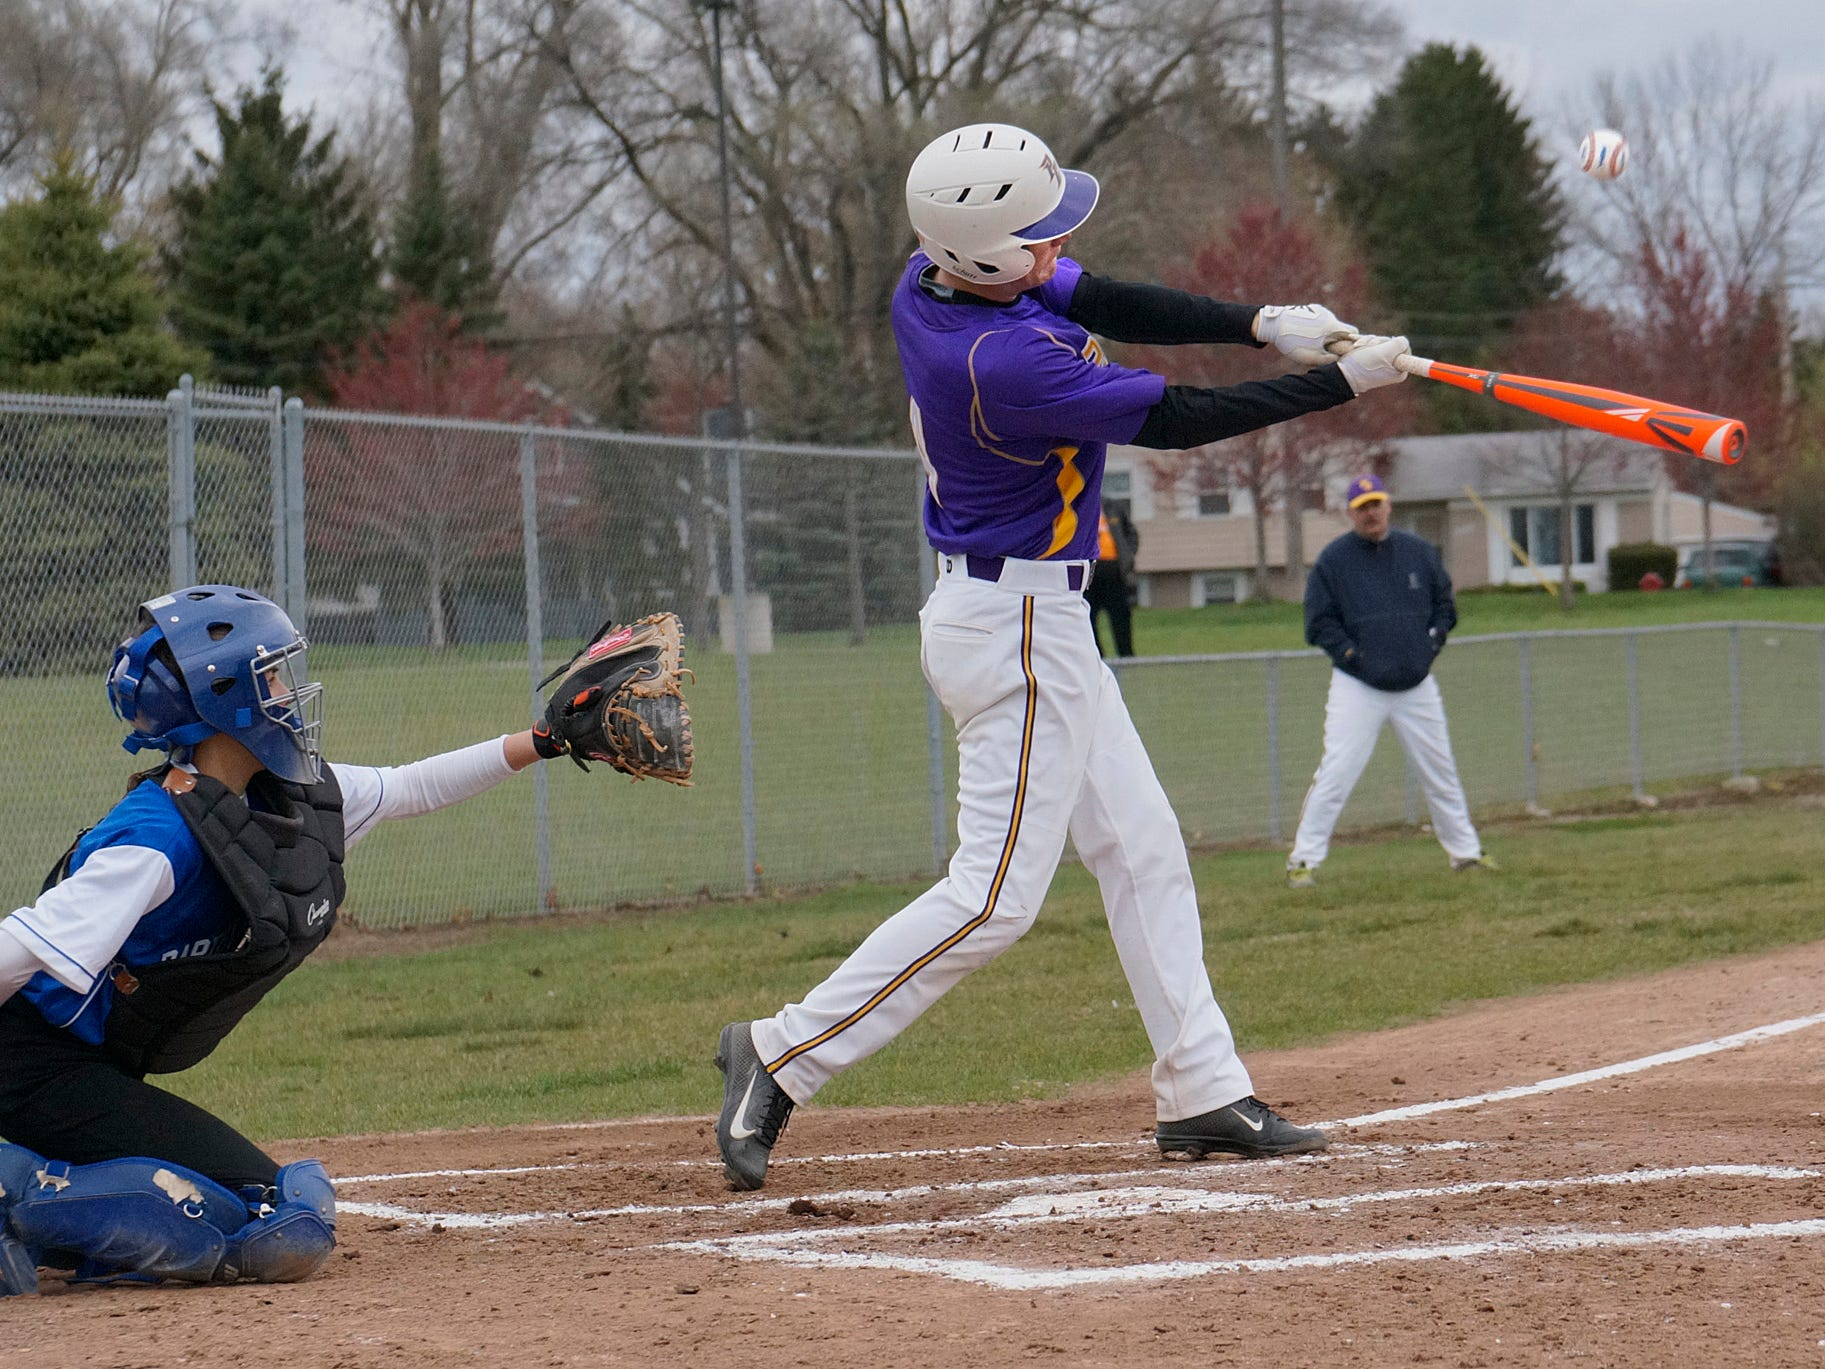 Taking a rip at a pitch Thursday is PCA's Will Crecelius. He and his Eagles teammates romped to a 15-0 win.